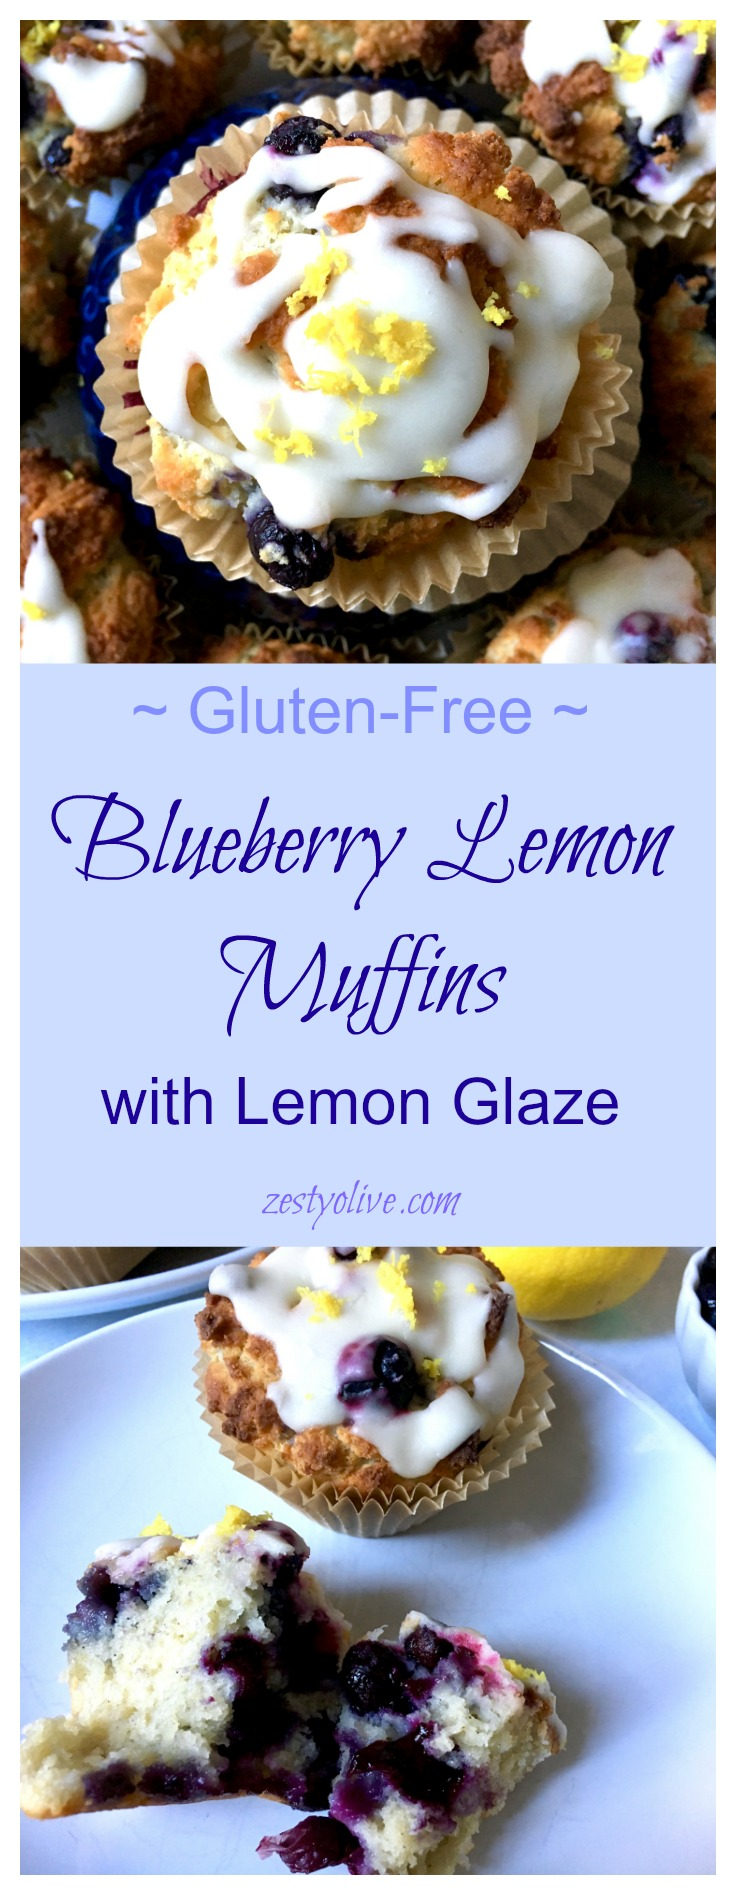 Blueberry Lemon Muffins (Gluten-Free)